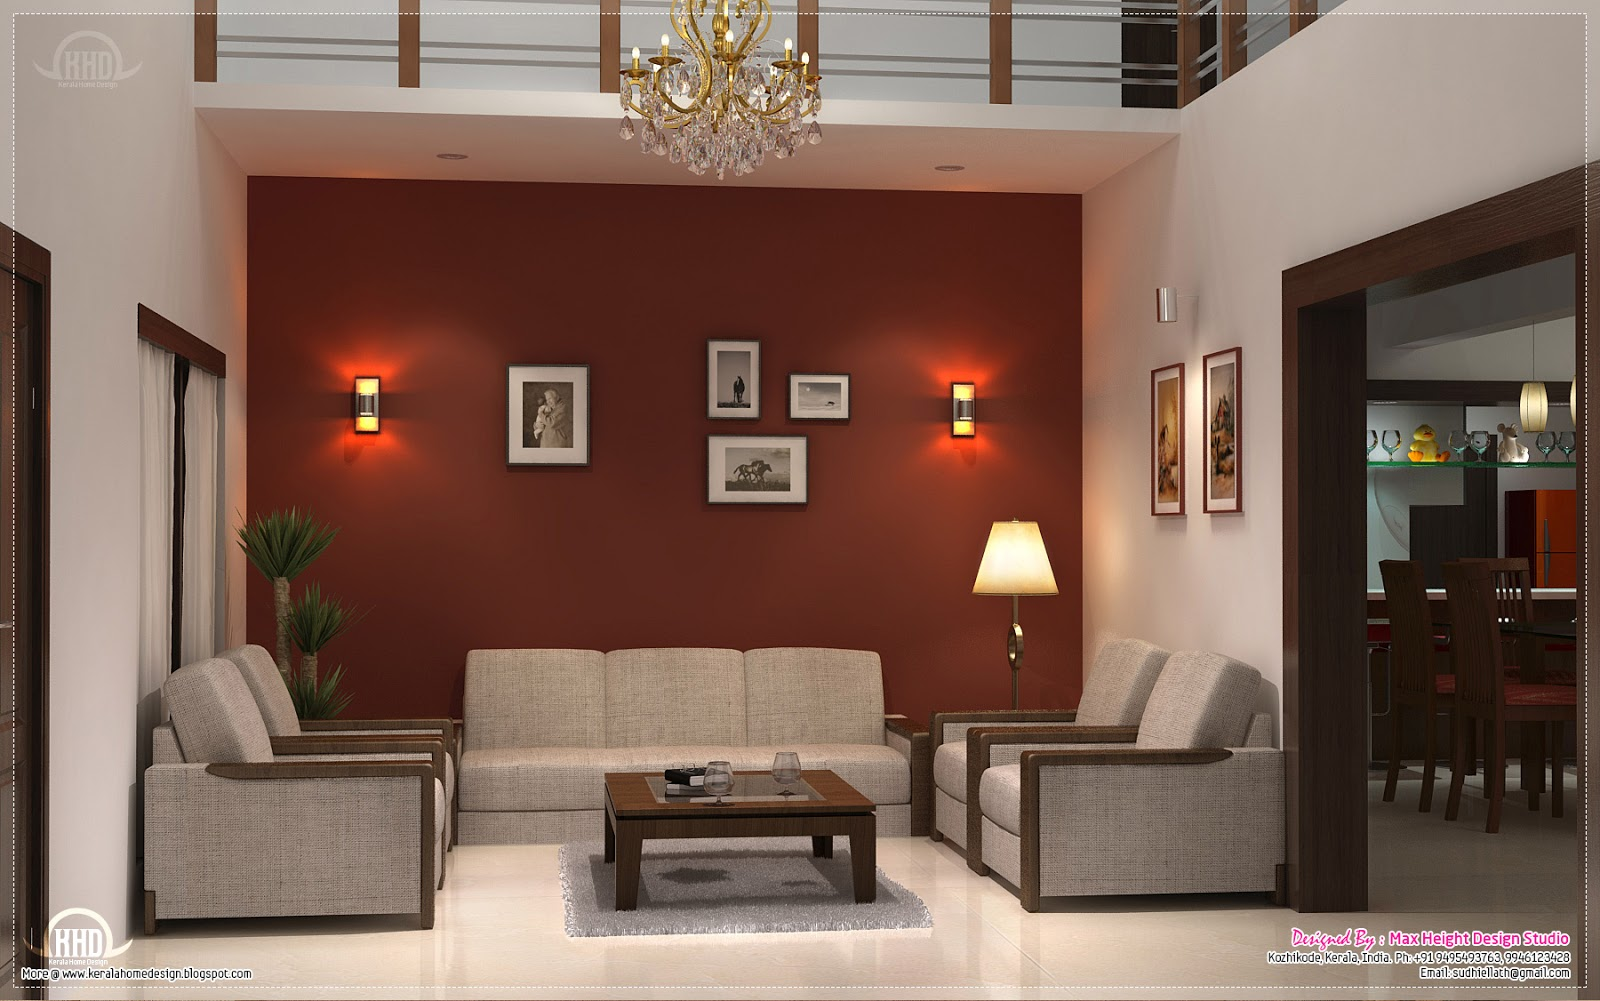 Home interior design ideas kerala home design and floor for Indian interior design ideas